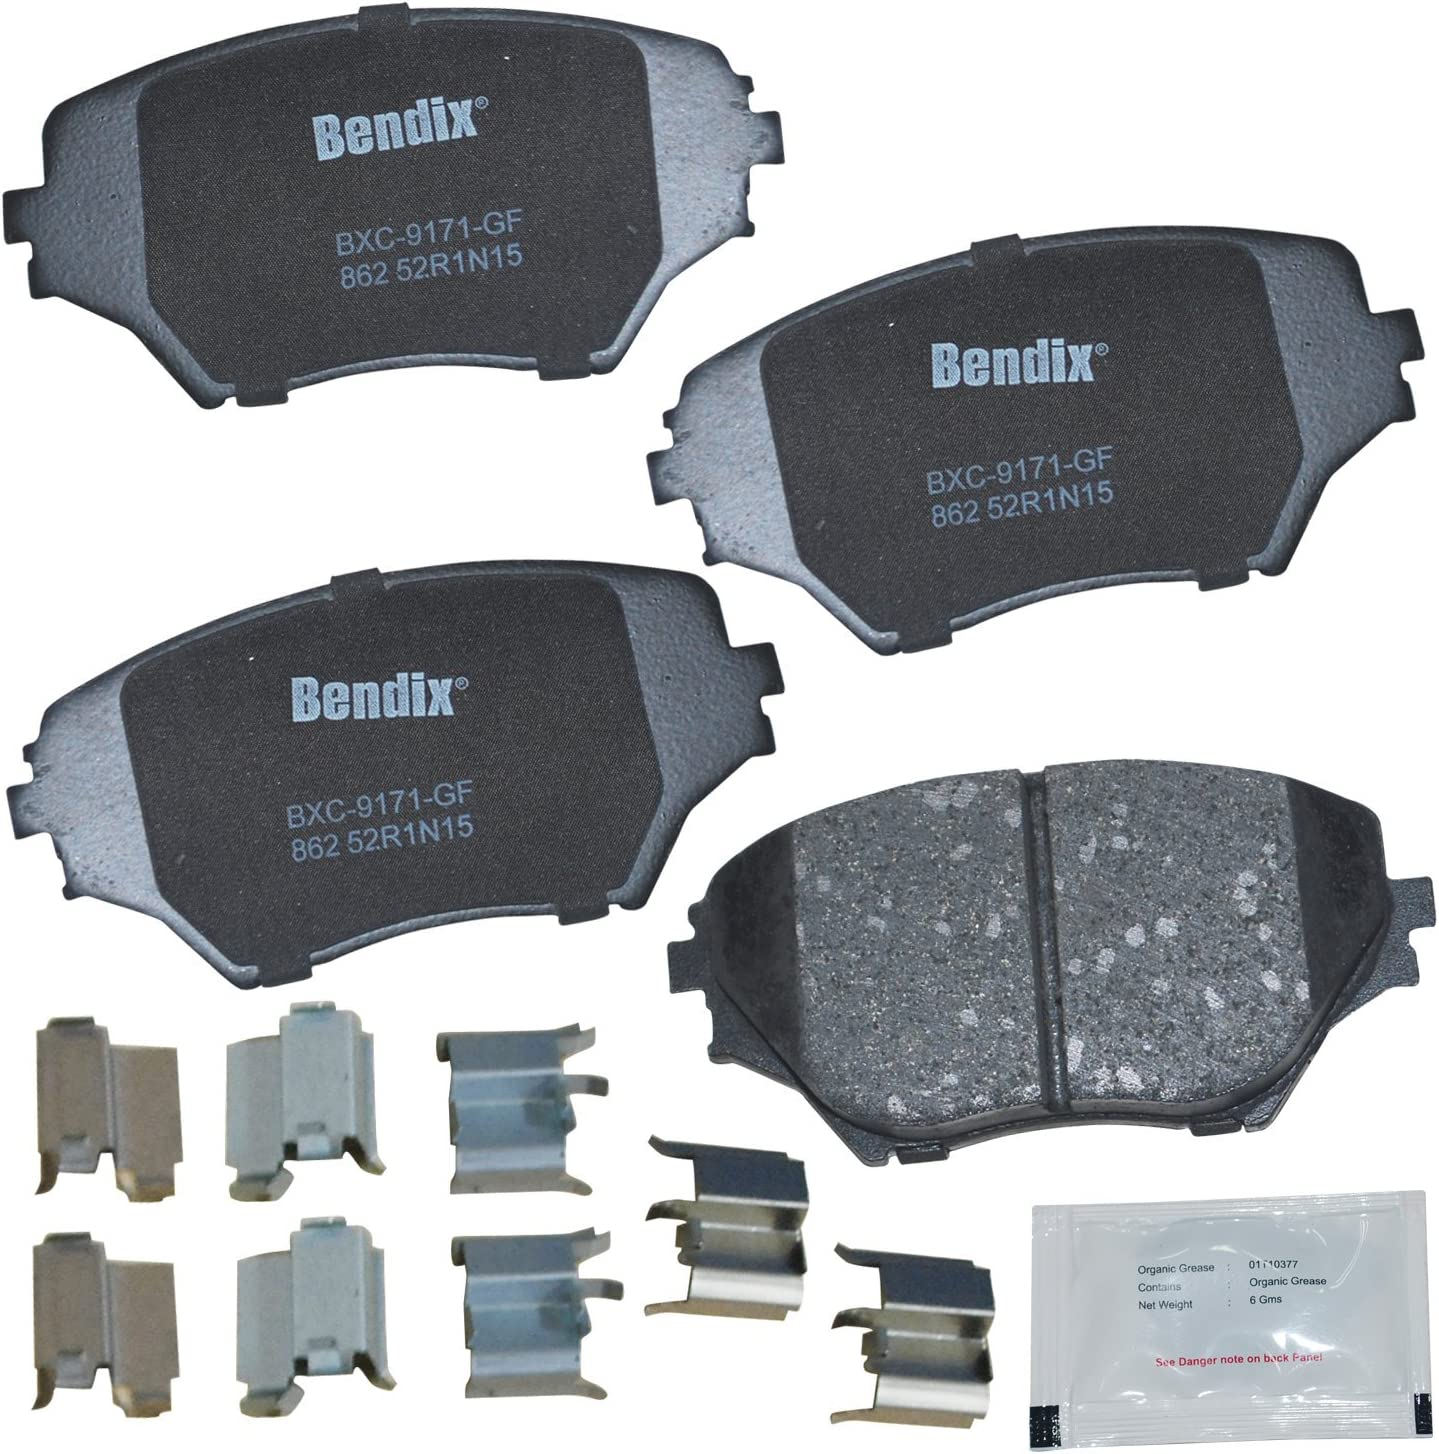 with Installation Hardware Front Bendix Premium Copper Free CFC862 Premium Copper Free Ceramic Brake Pad